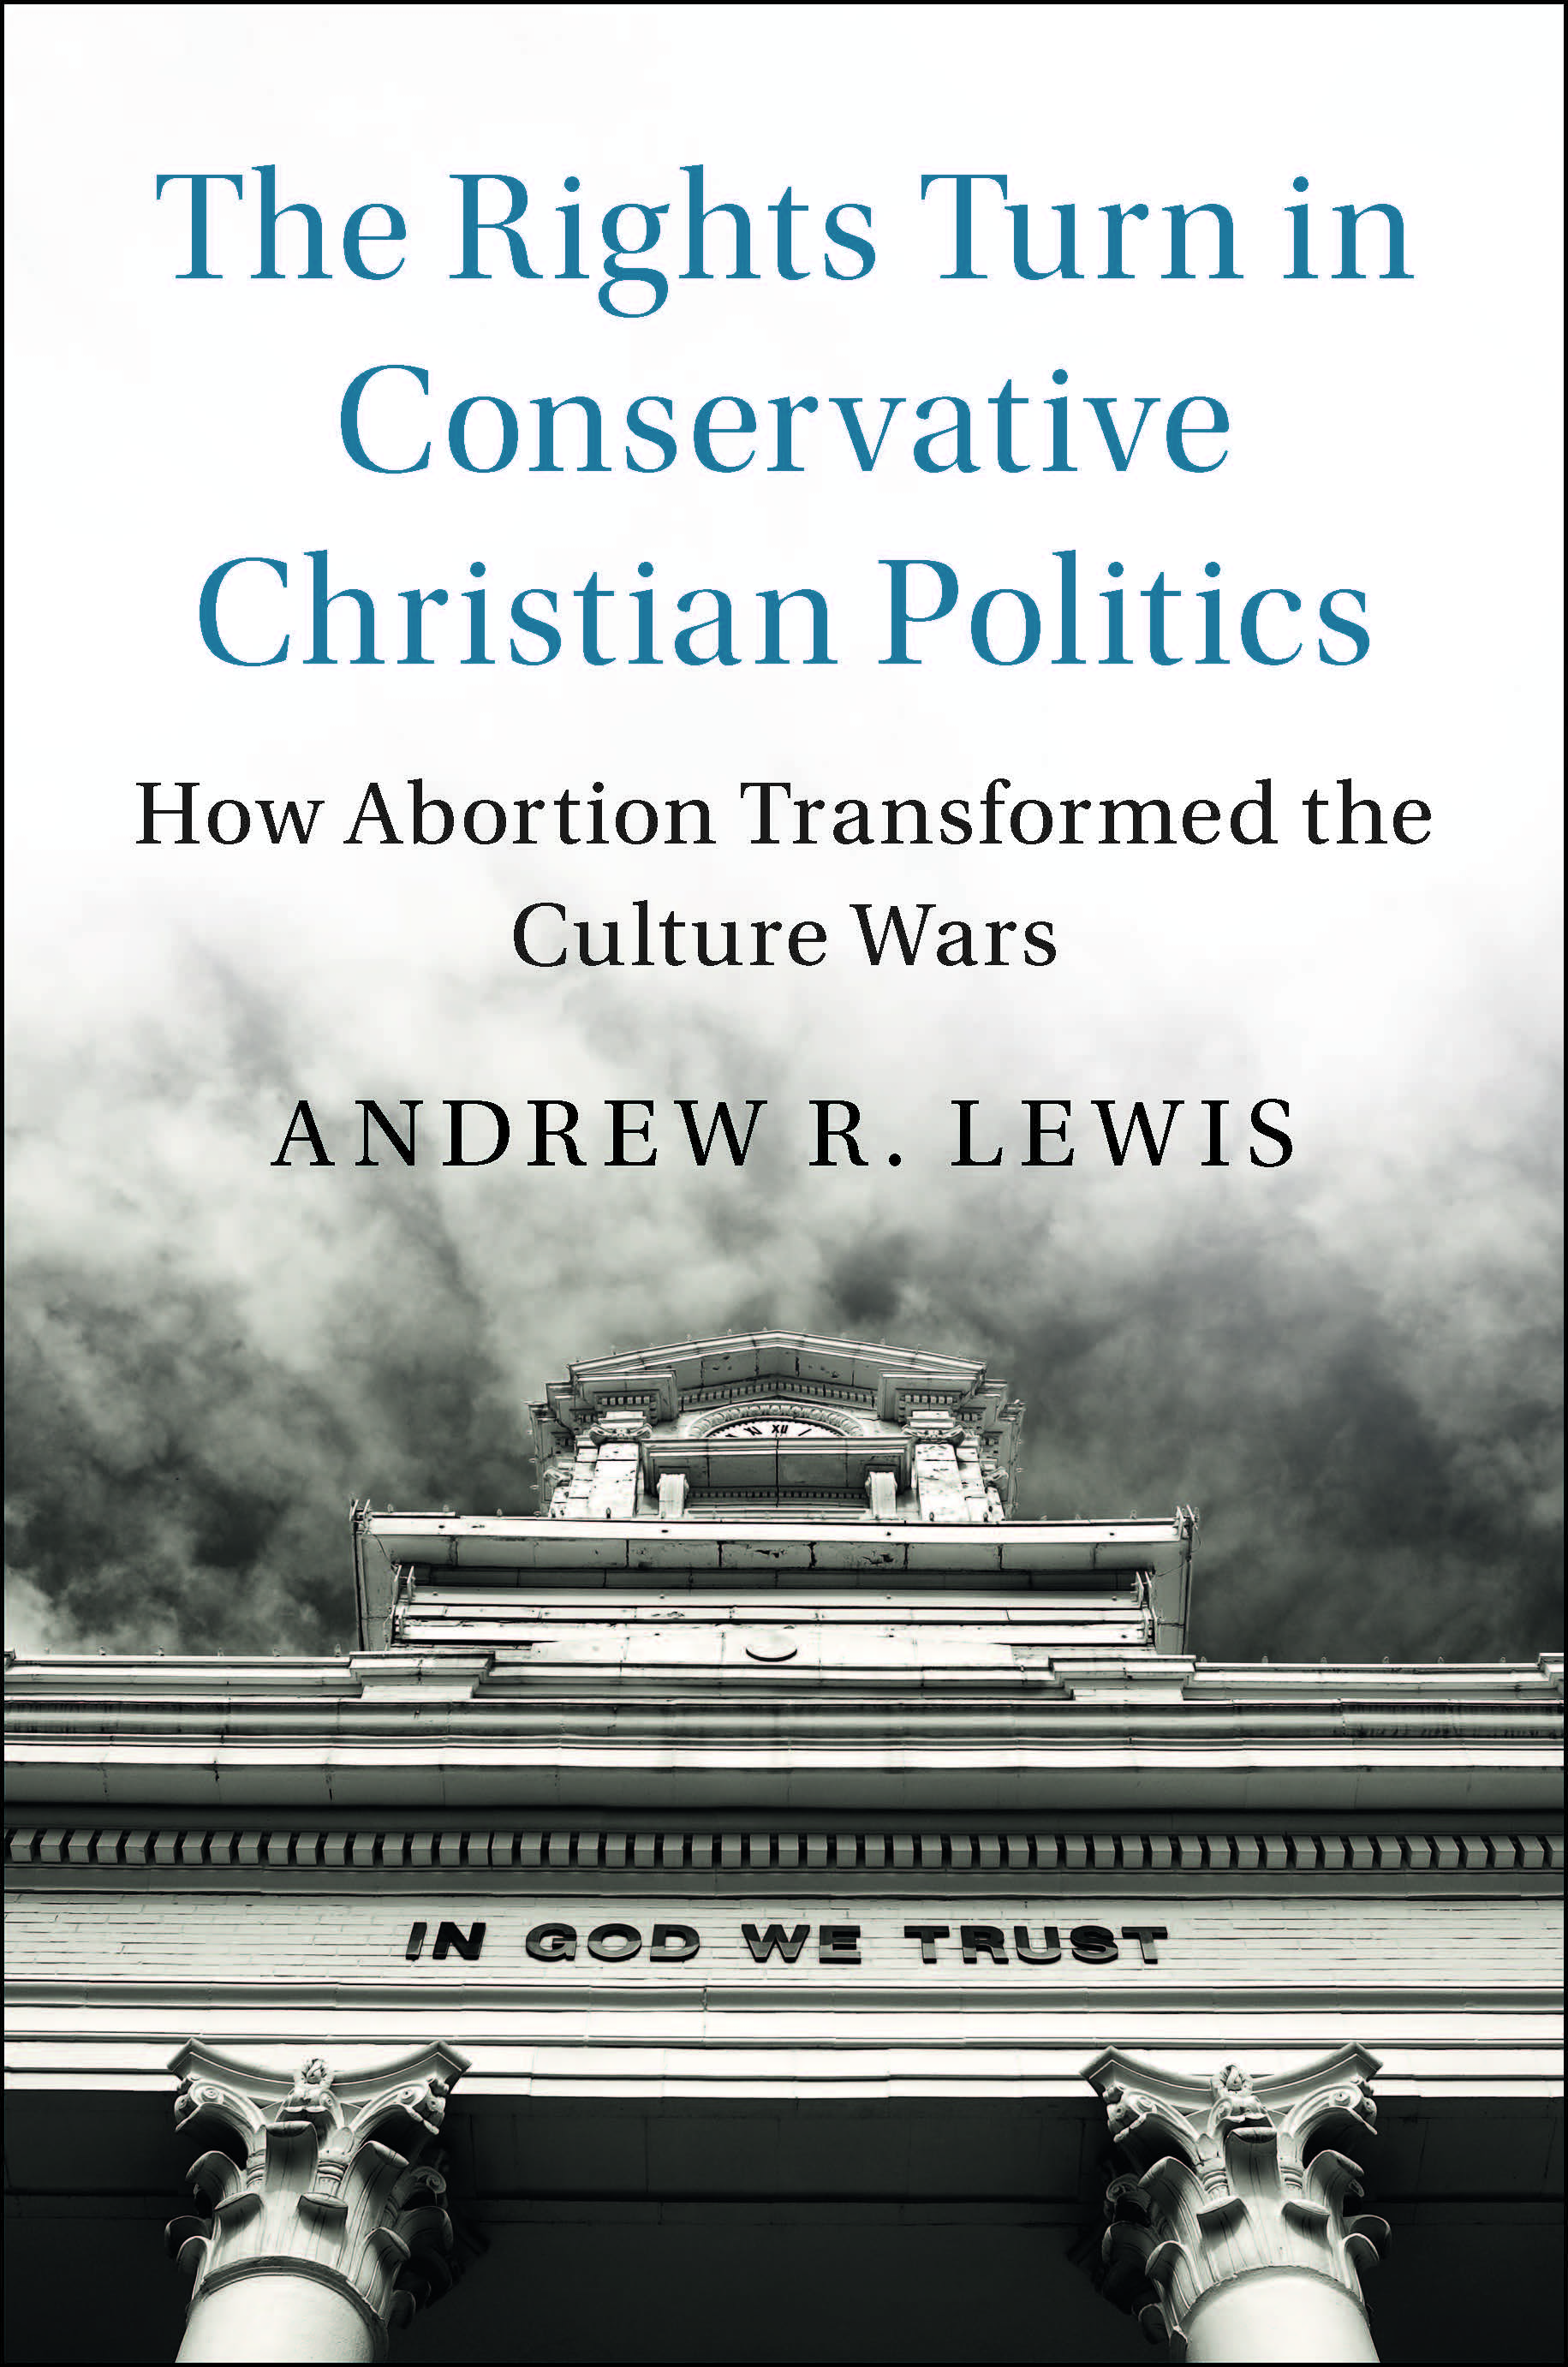 The Rights Turn in Conservative Christian Politics_Cover.jpg